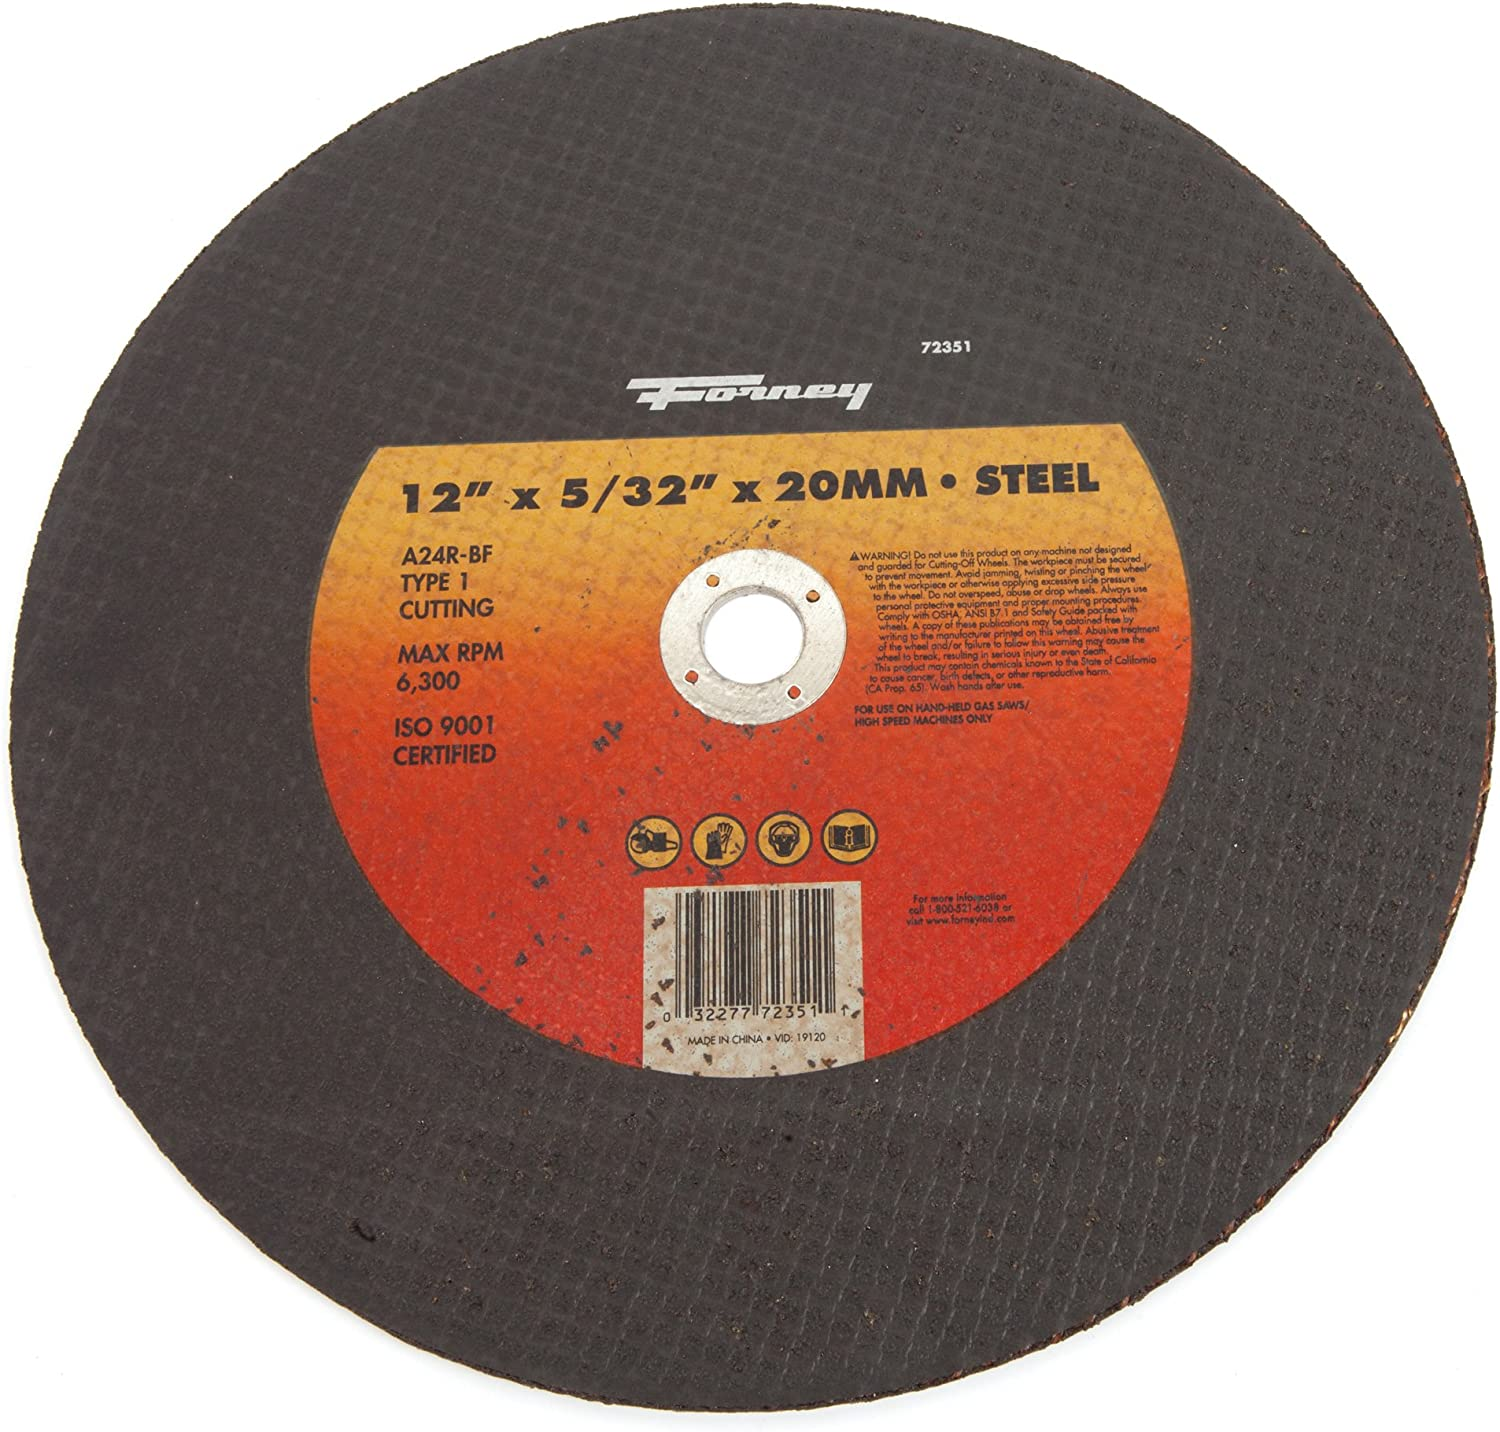 12-Inch-by-5//32-Inch A24R-BF Type 1 High Speed Metal with 20-Millimeter Arbor Forney 72351 Cut-off Wheel